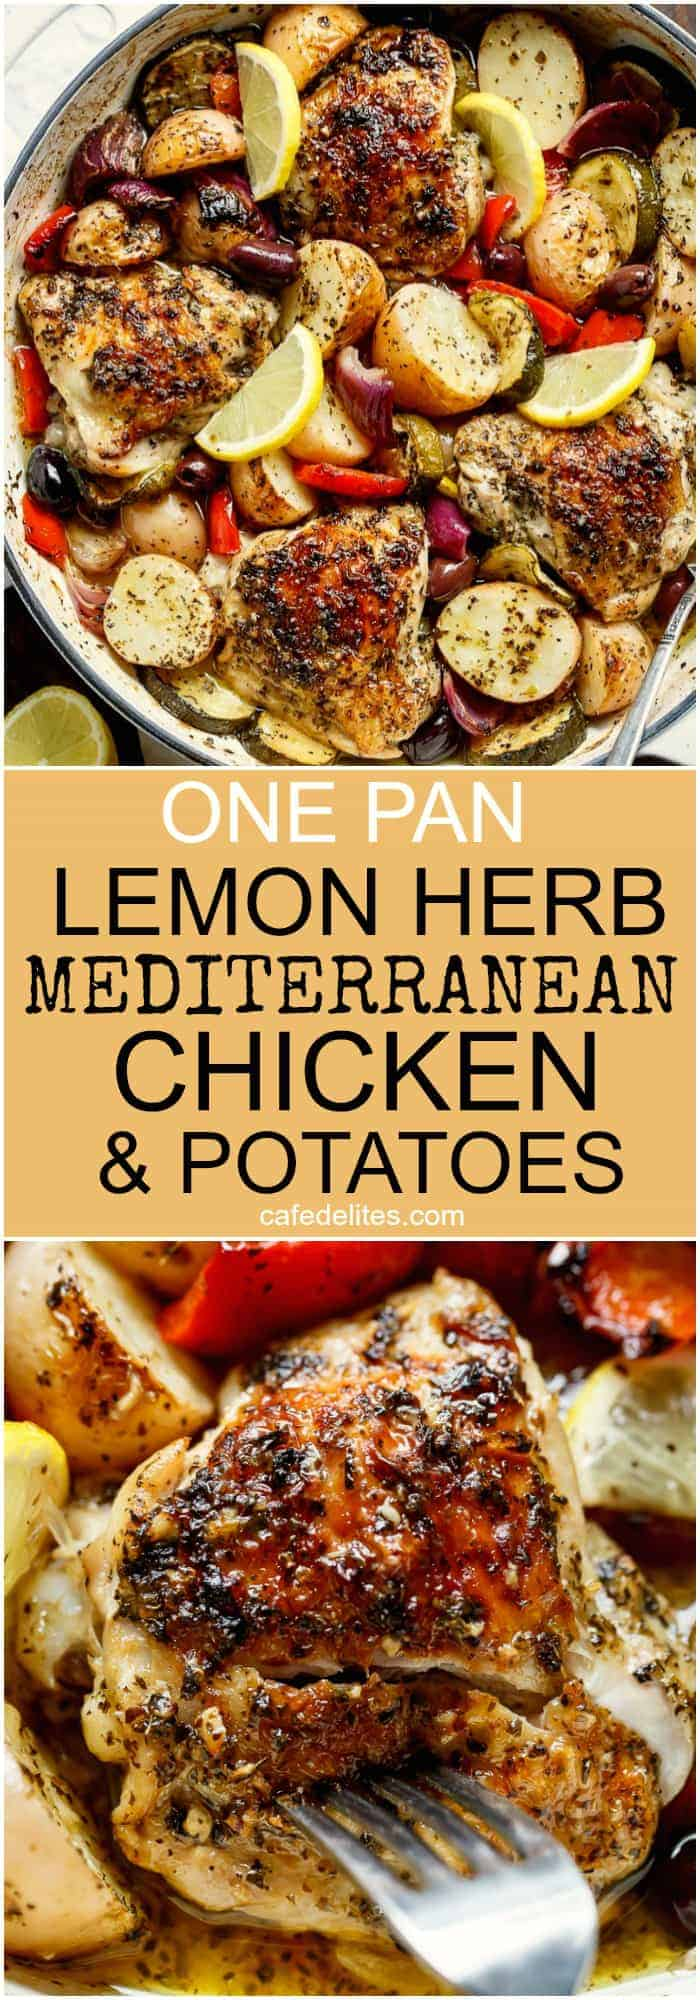 Garlic lemon herb mediterranean chicken potatoes one pan cafe garlic lemon herb mediterranean chicken and potatoes all made in the one pan for an forumfinder Images